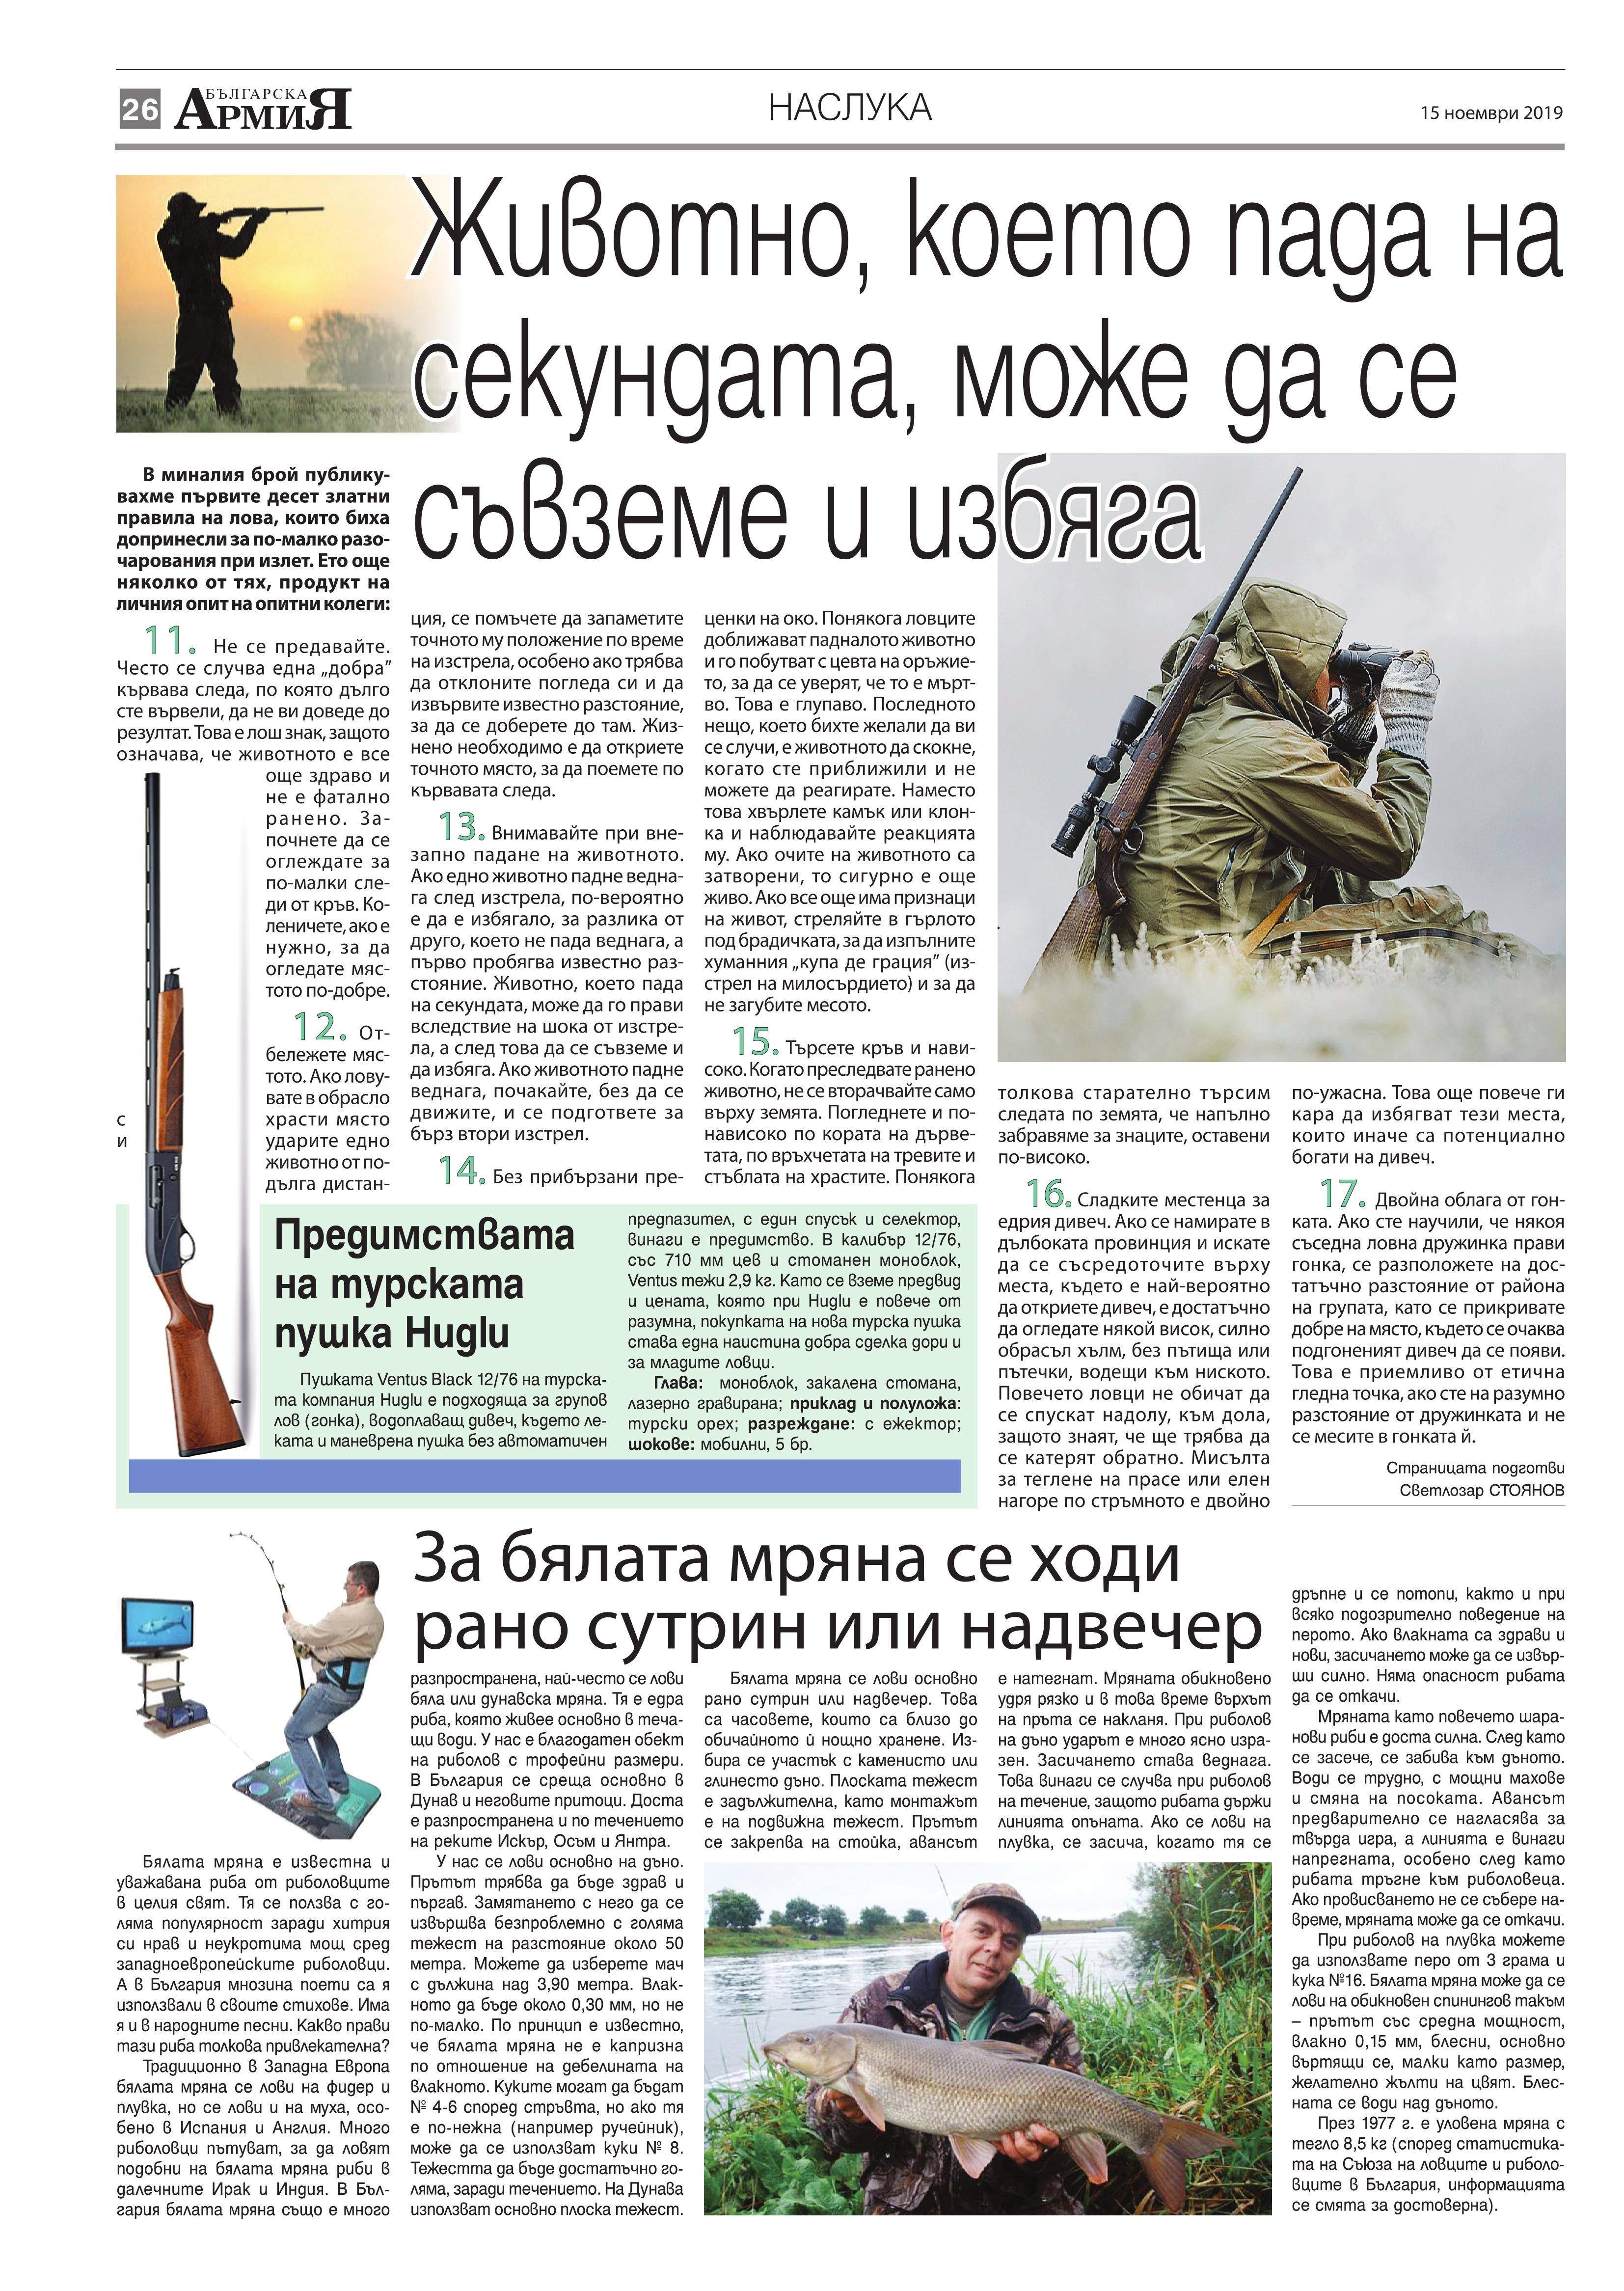 https://armymedia.bg/wp-content/uploads/2015/06/26.page1_-96.jpg